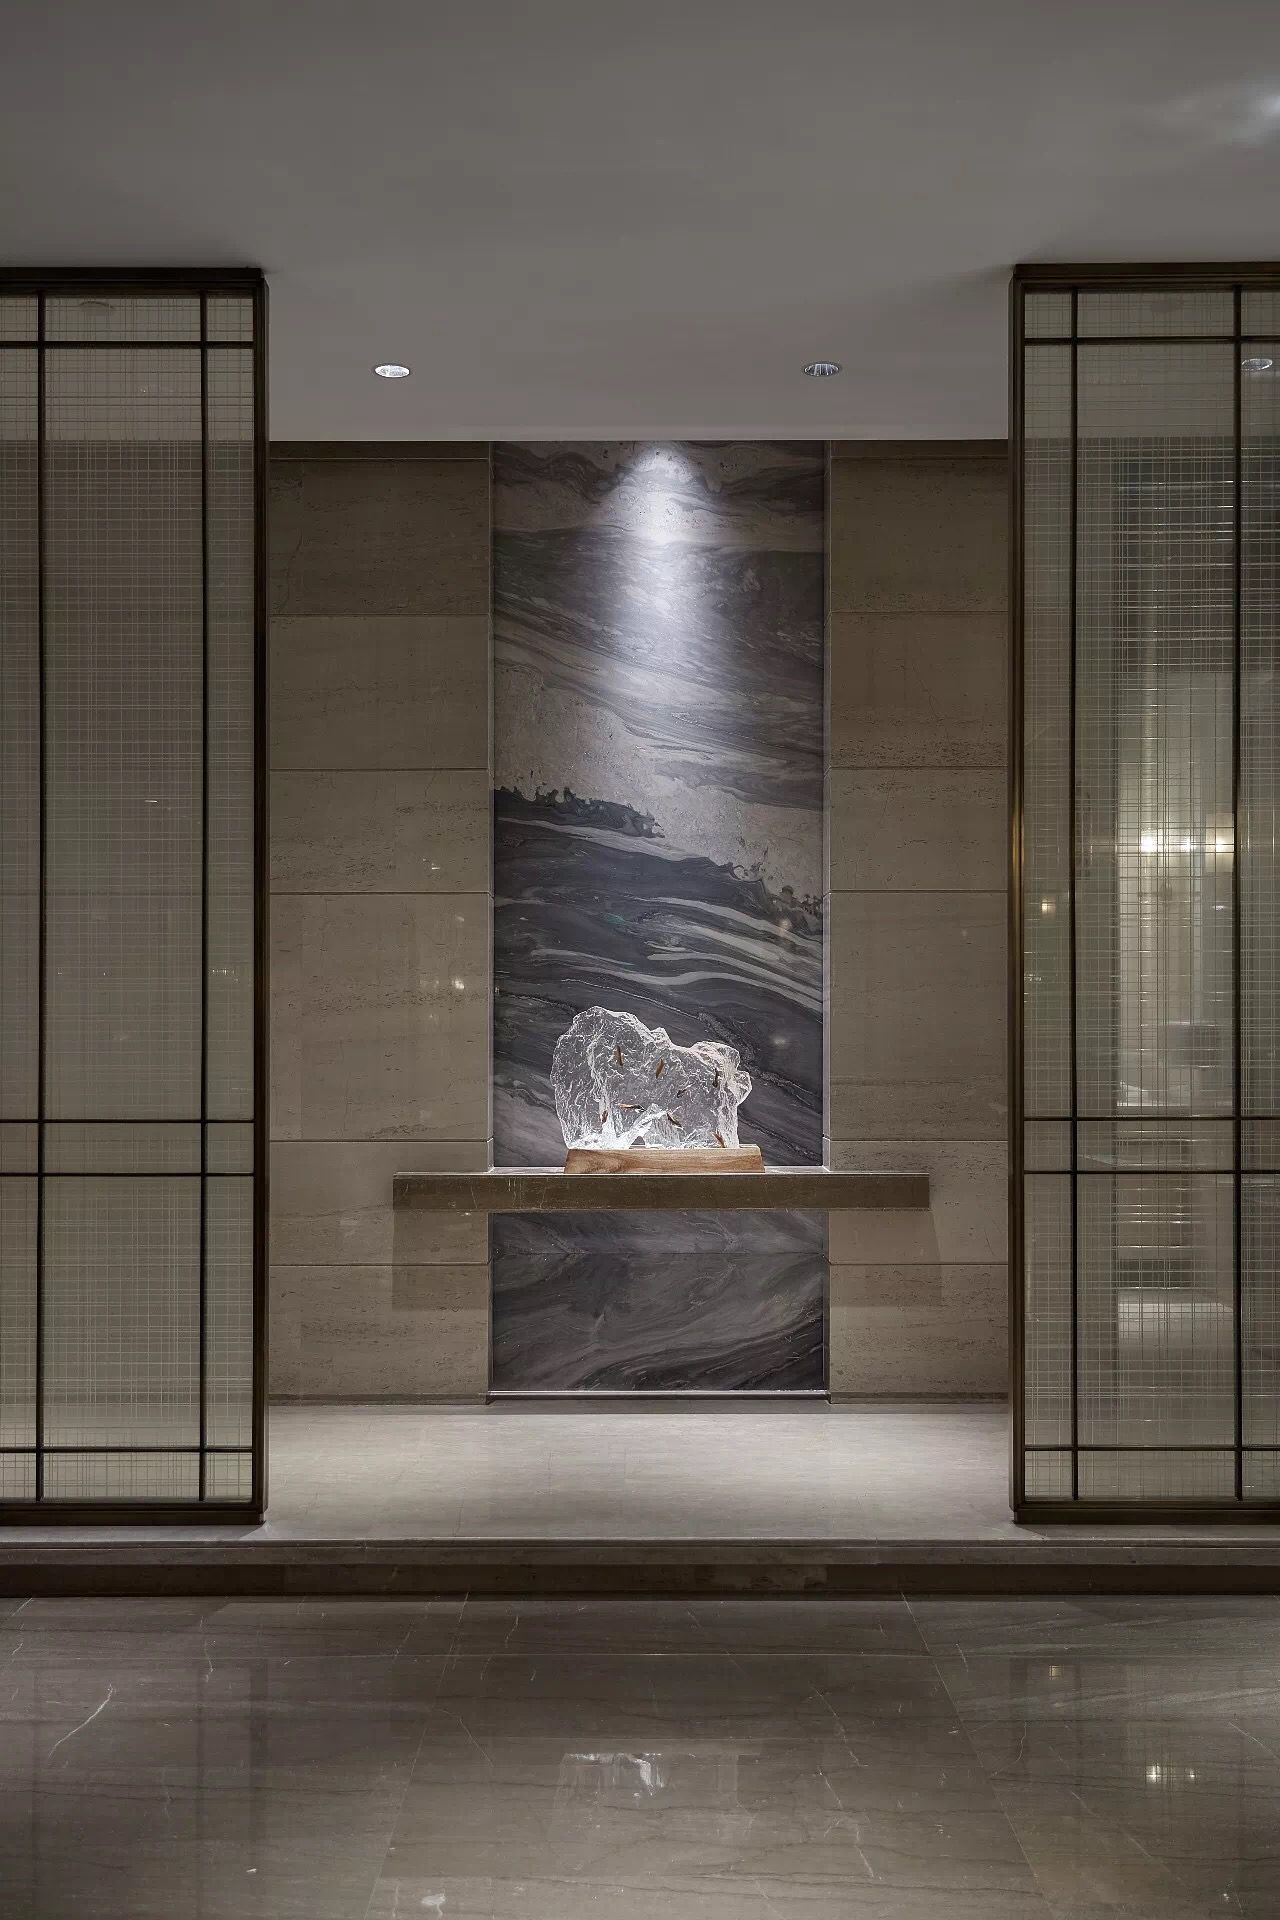 Pin By Xiao Ting On B玄关 Luxury House Interior Design Foyer Design Lobby Design